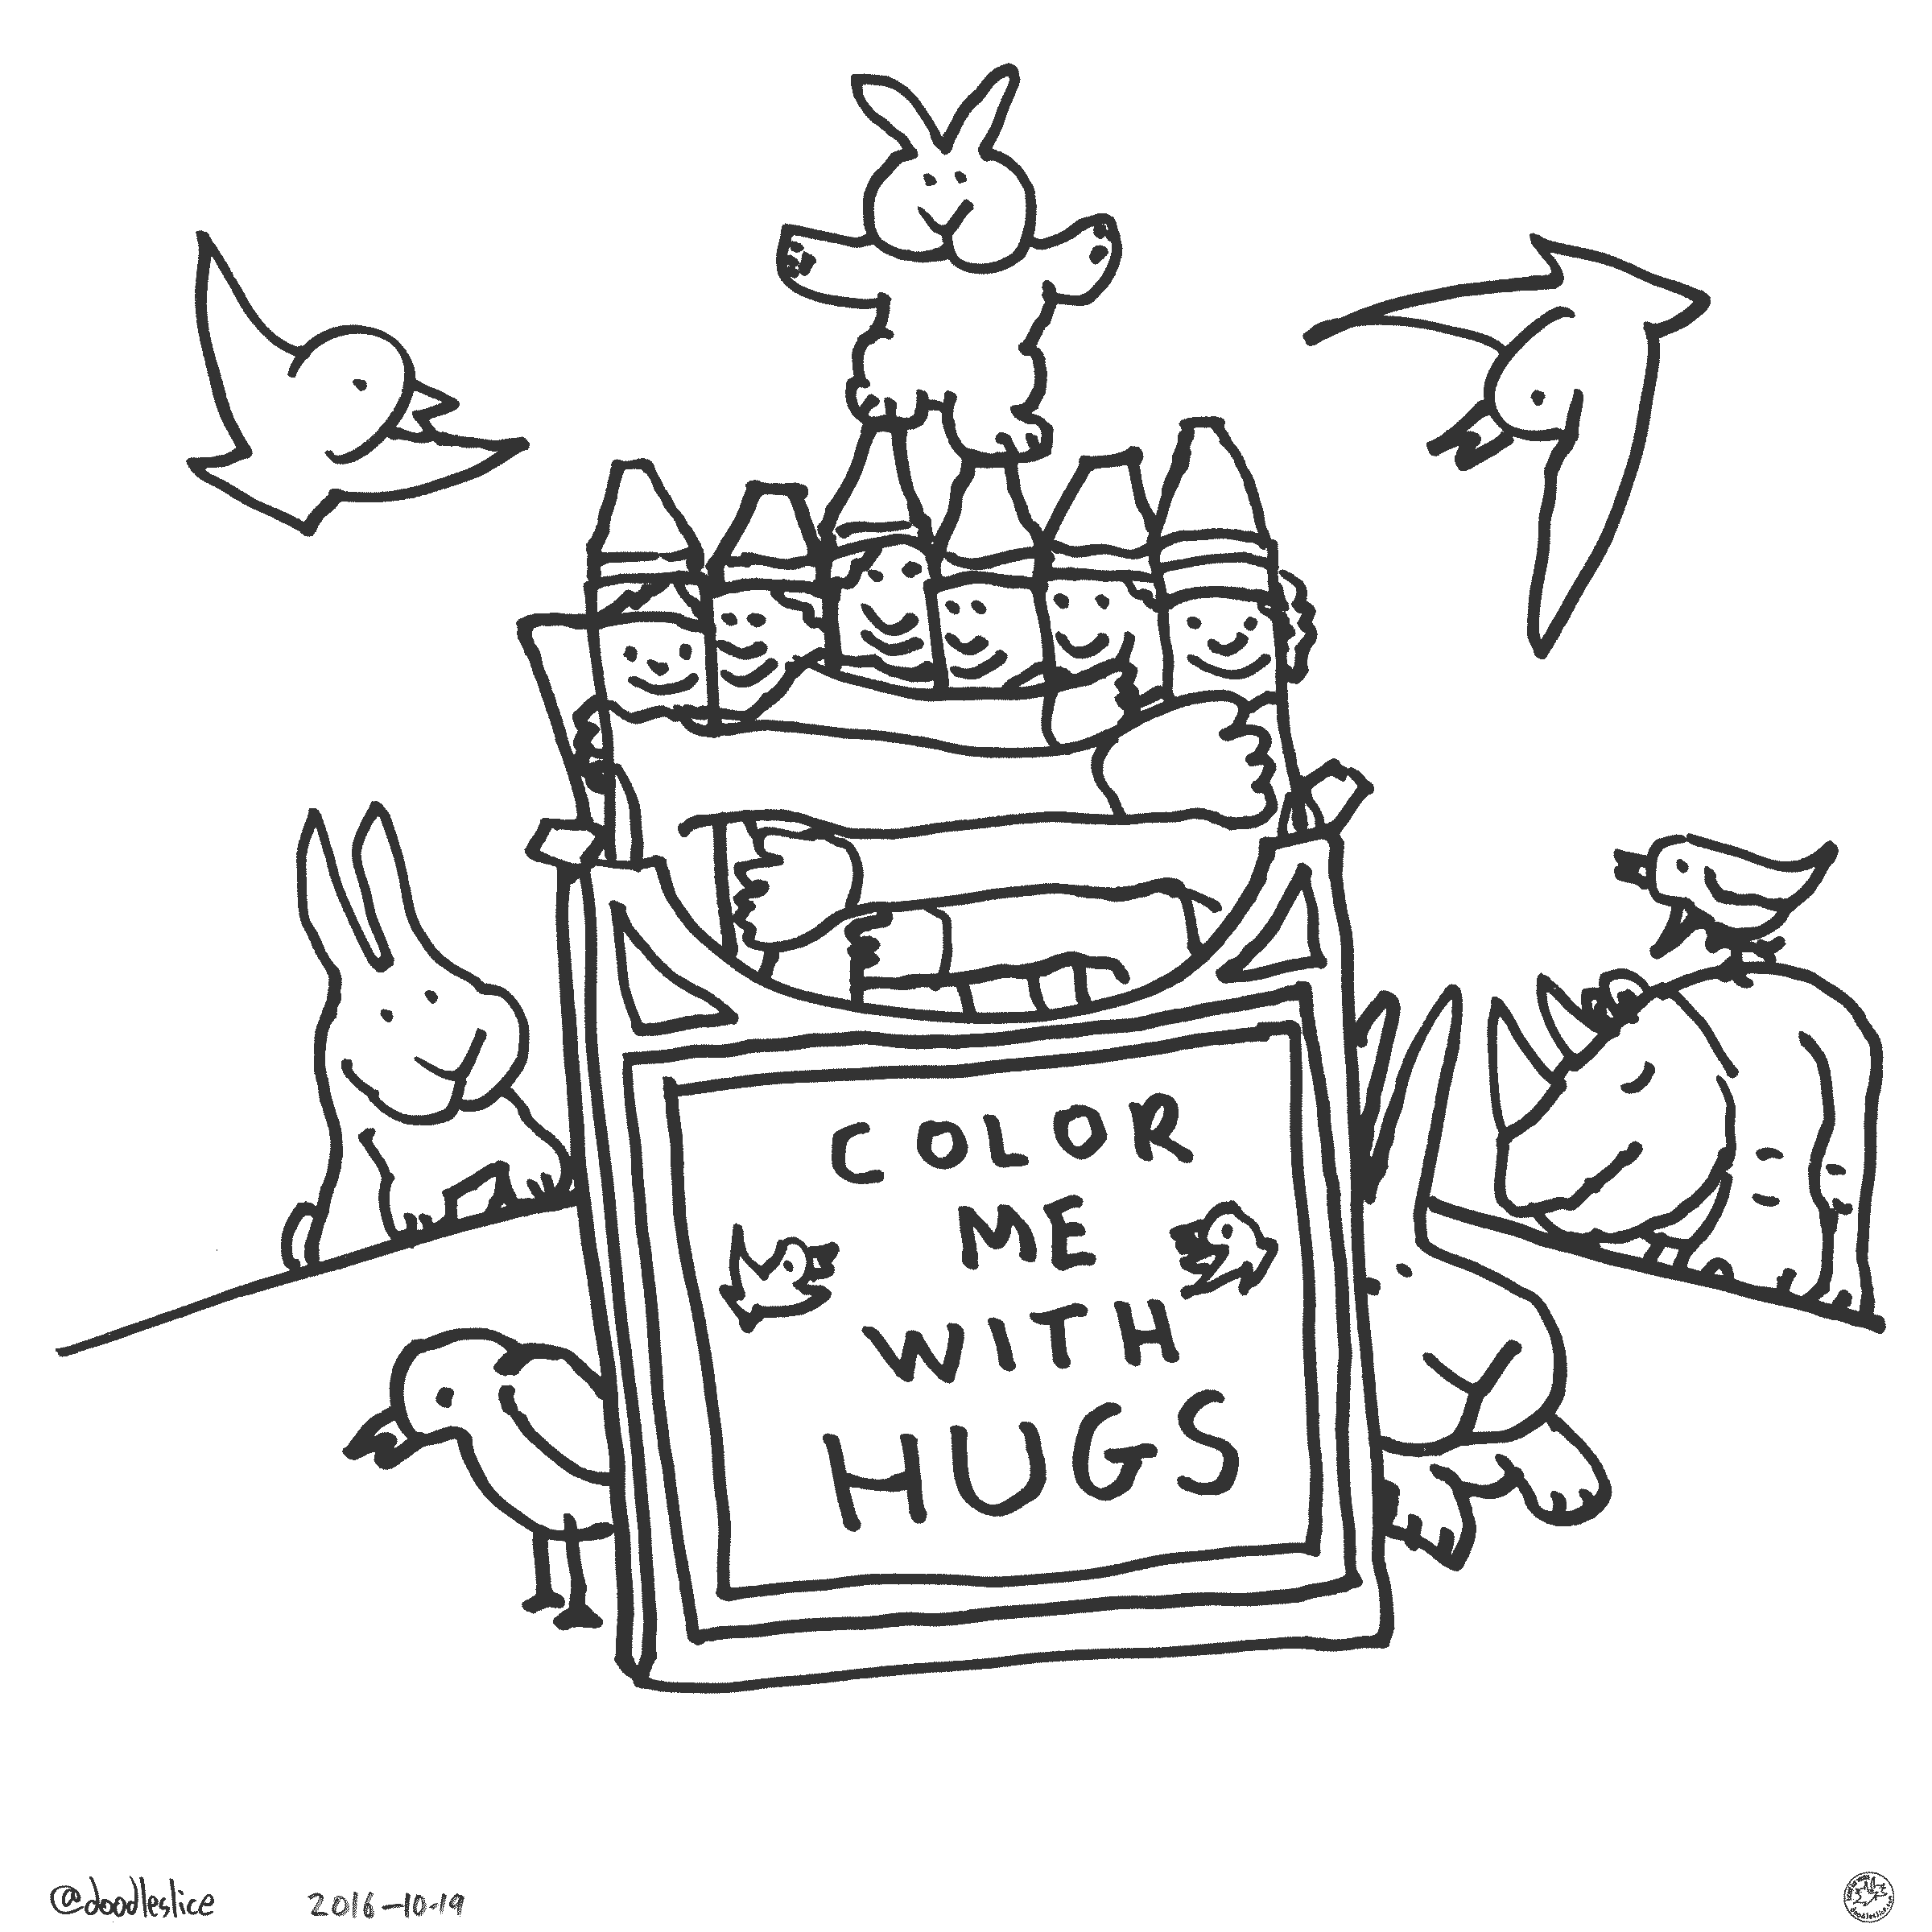 Color Me With Hugs